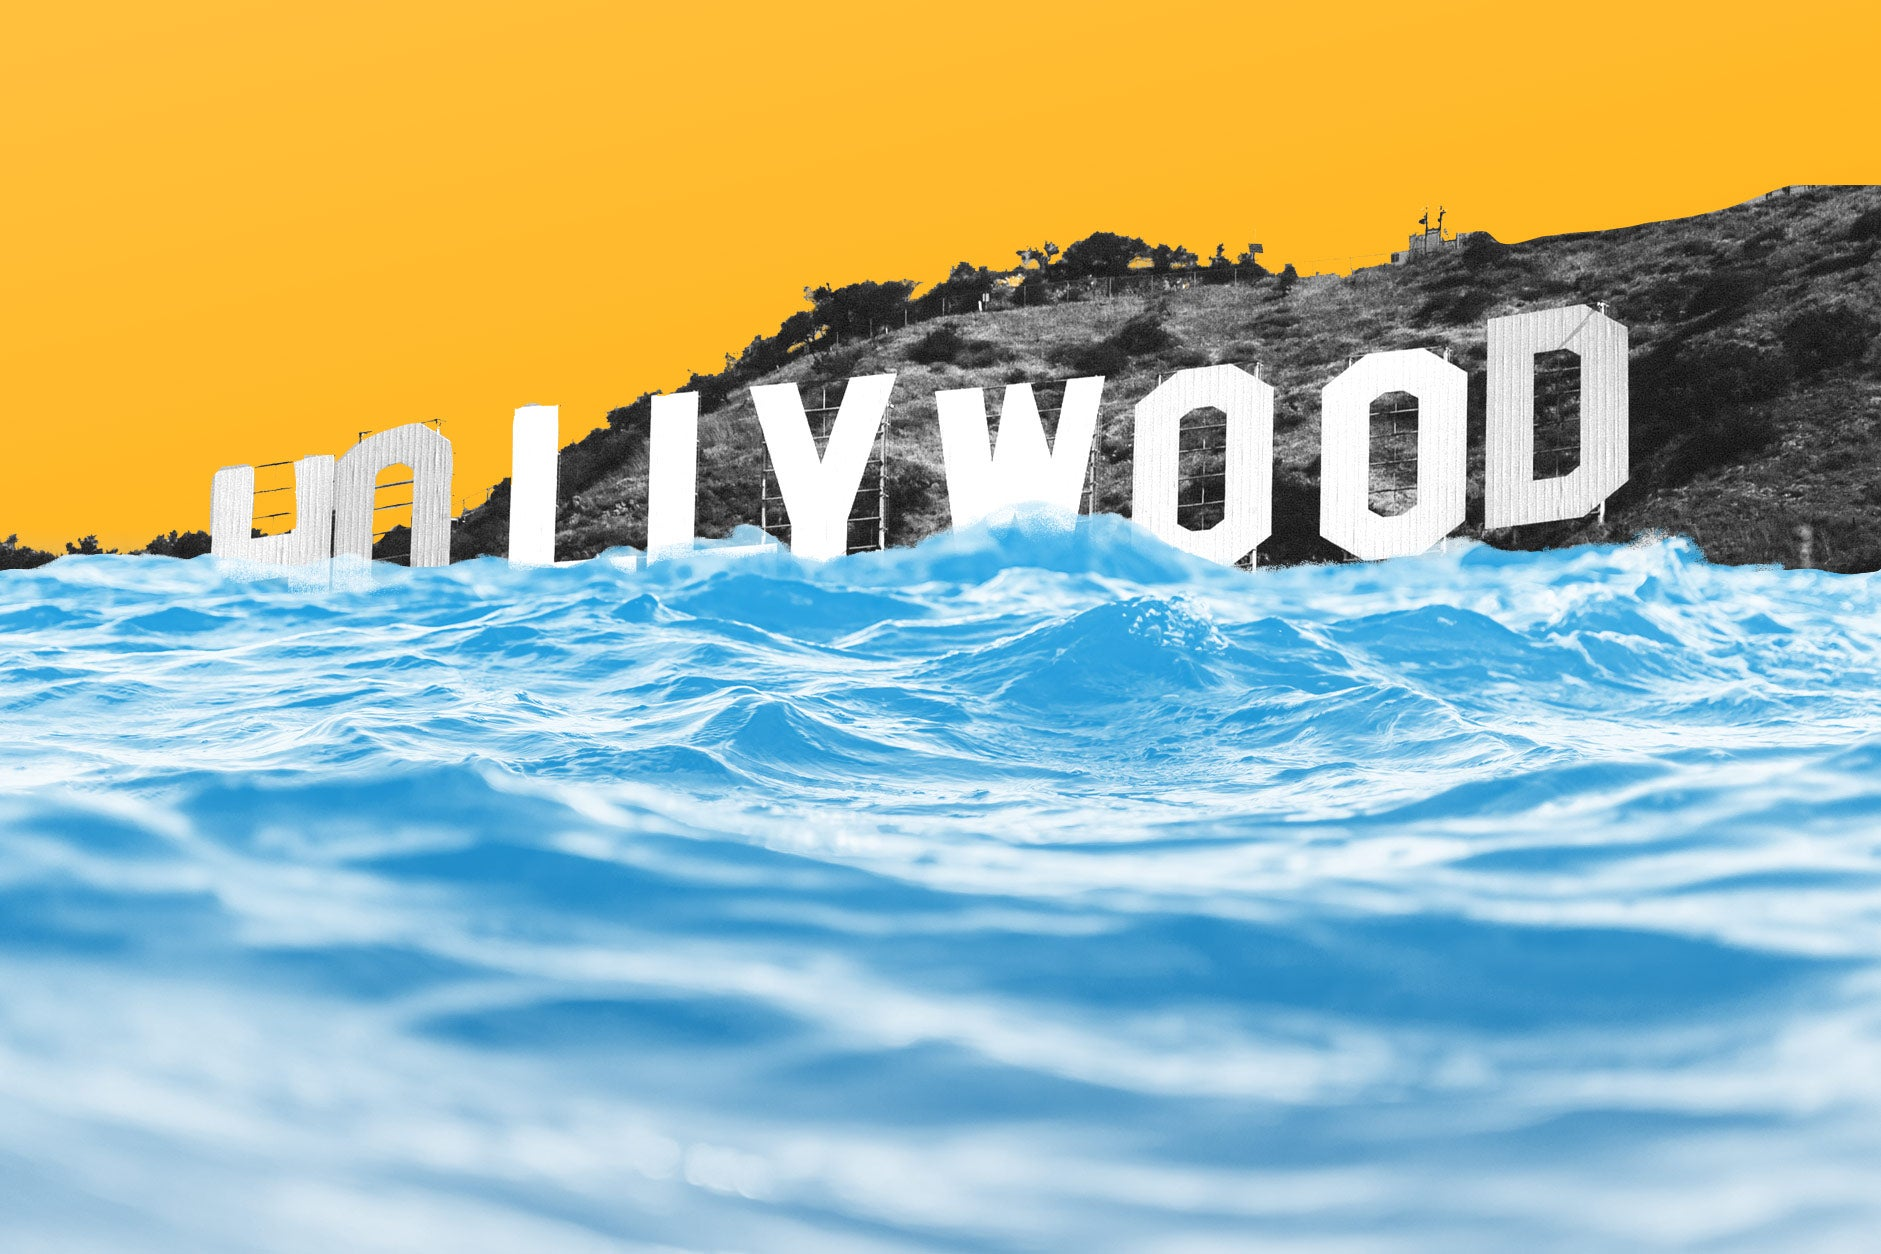 The Hollywood sign submerged in water